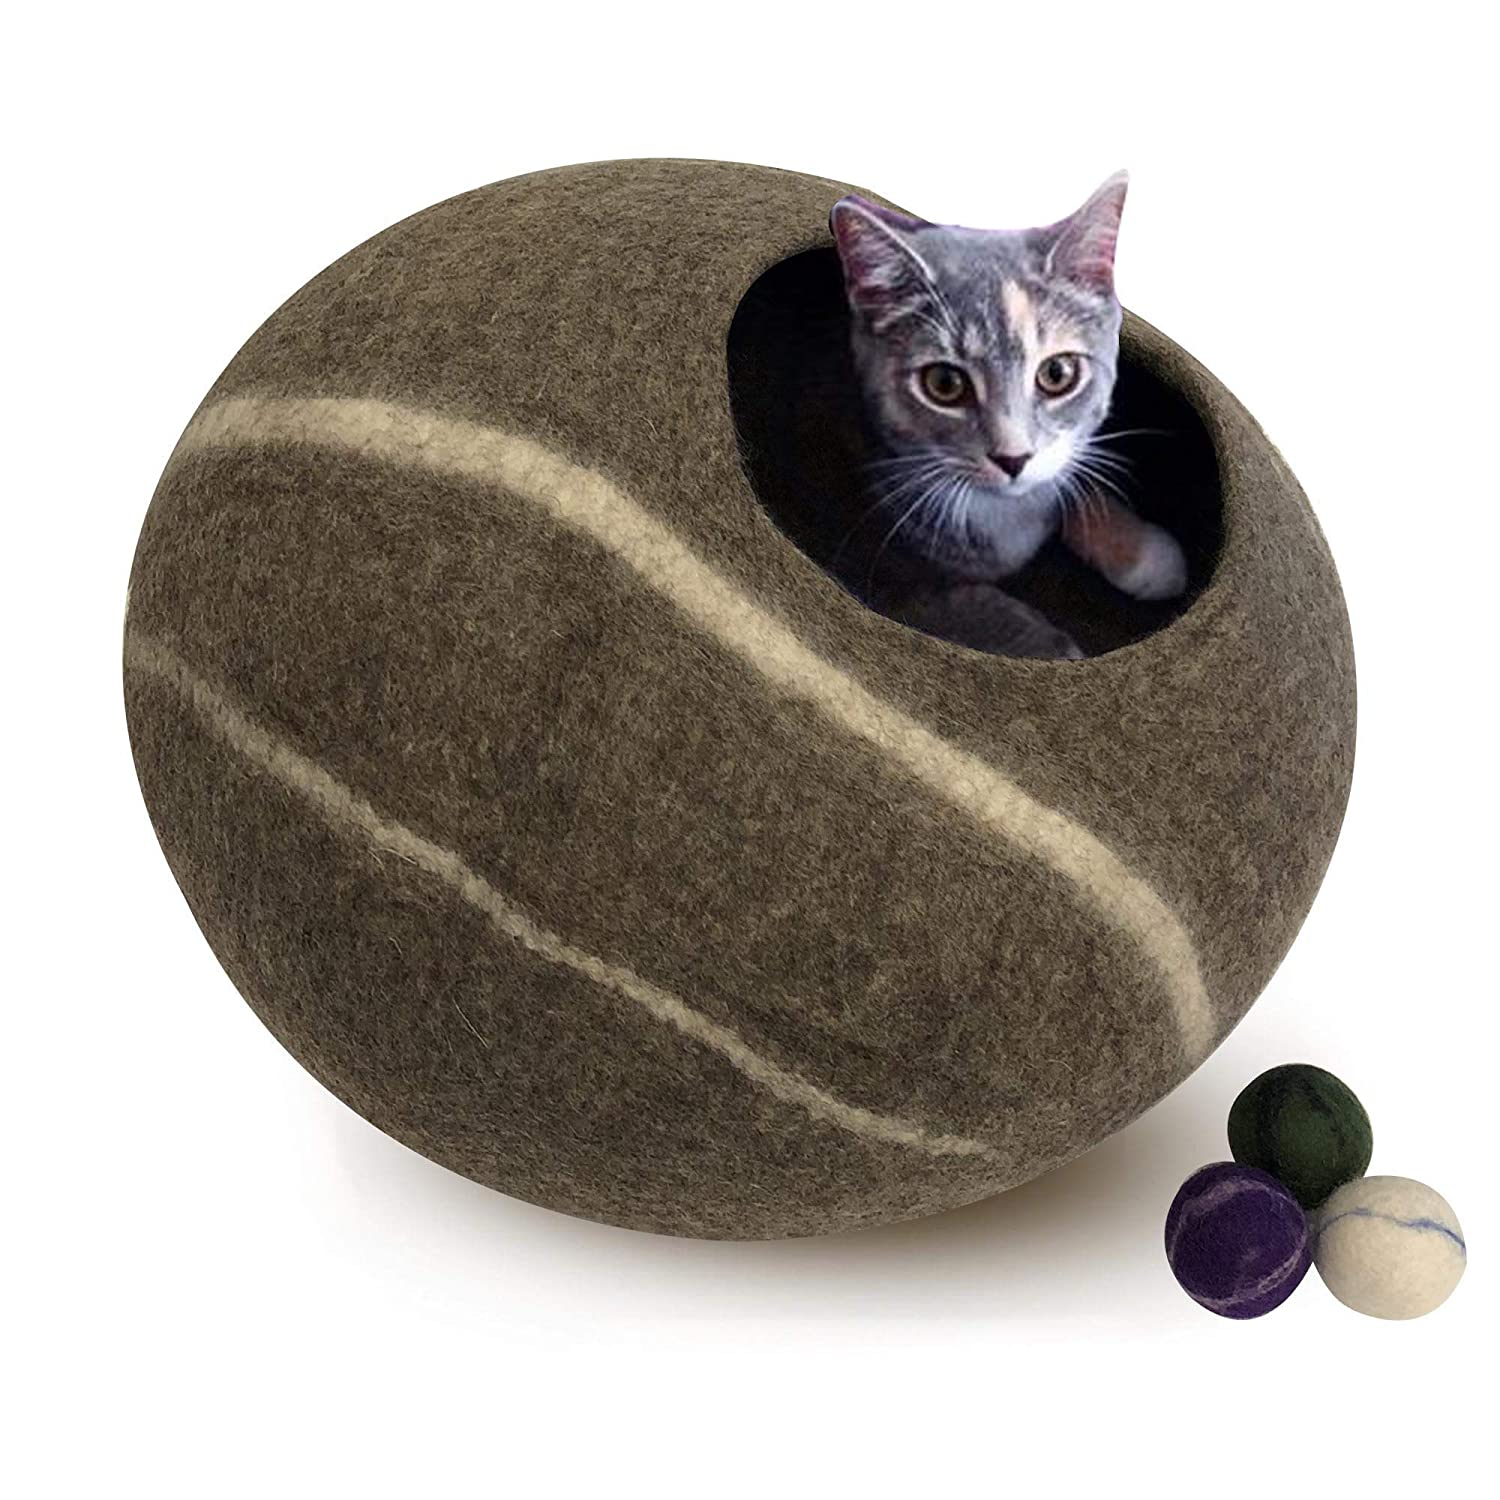 Genuine Felt Cat Bed Cave, Handmade in Nepal 100% All Natural Wool, Super Soft Kittens Cats (Tan Striped)